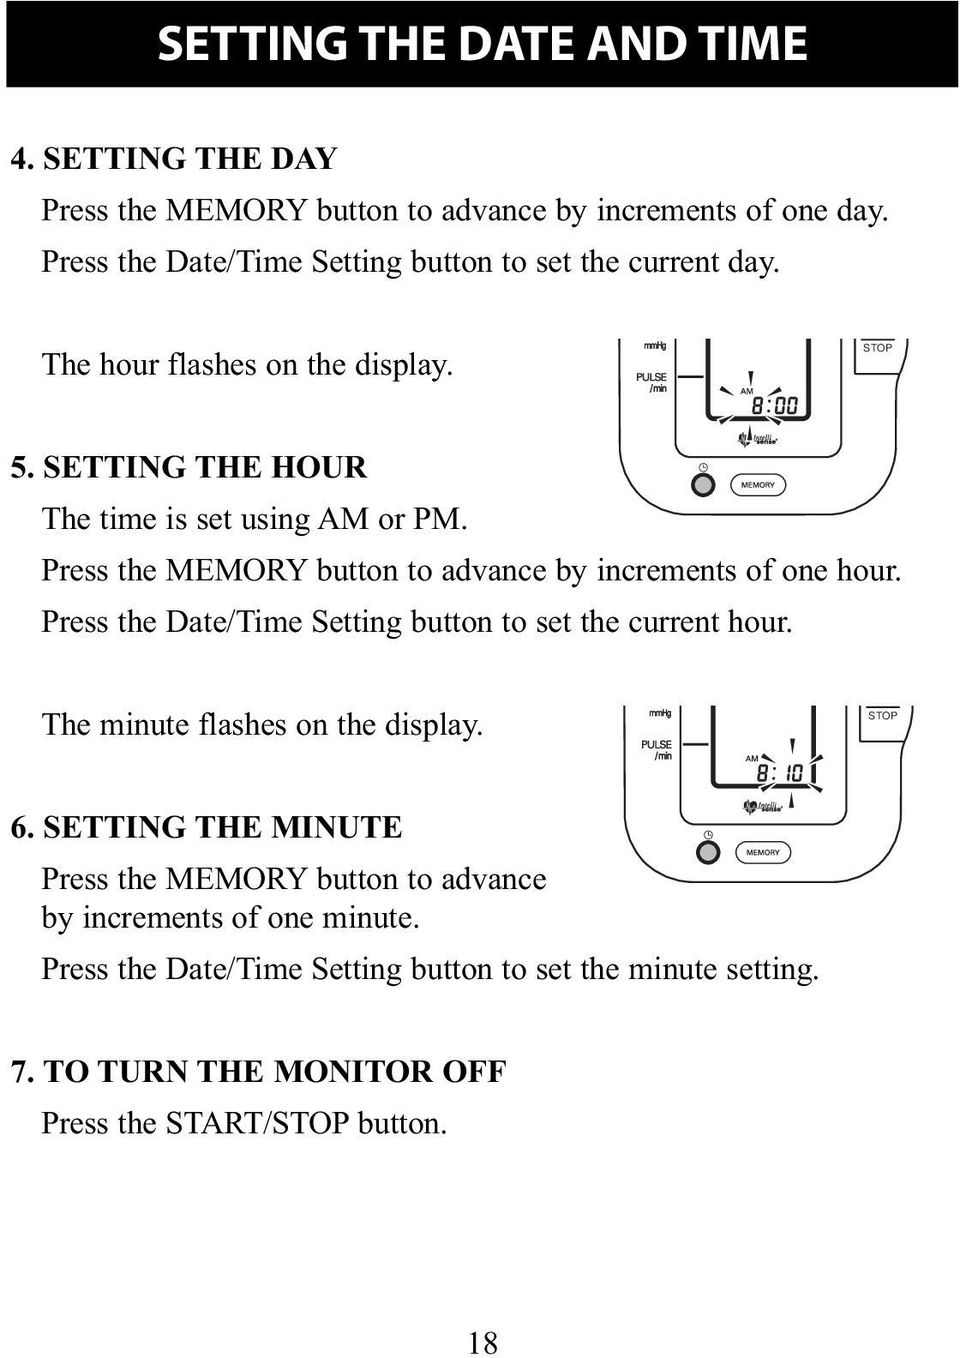 Press the MEMORY button to advance by increments of one hour. Press the Date/Time Setting button to set the current hour. The minute flashes on the display.